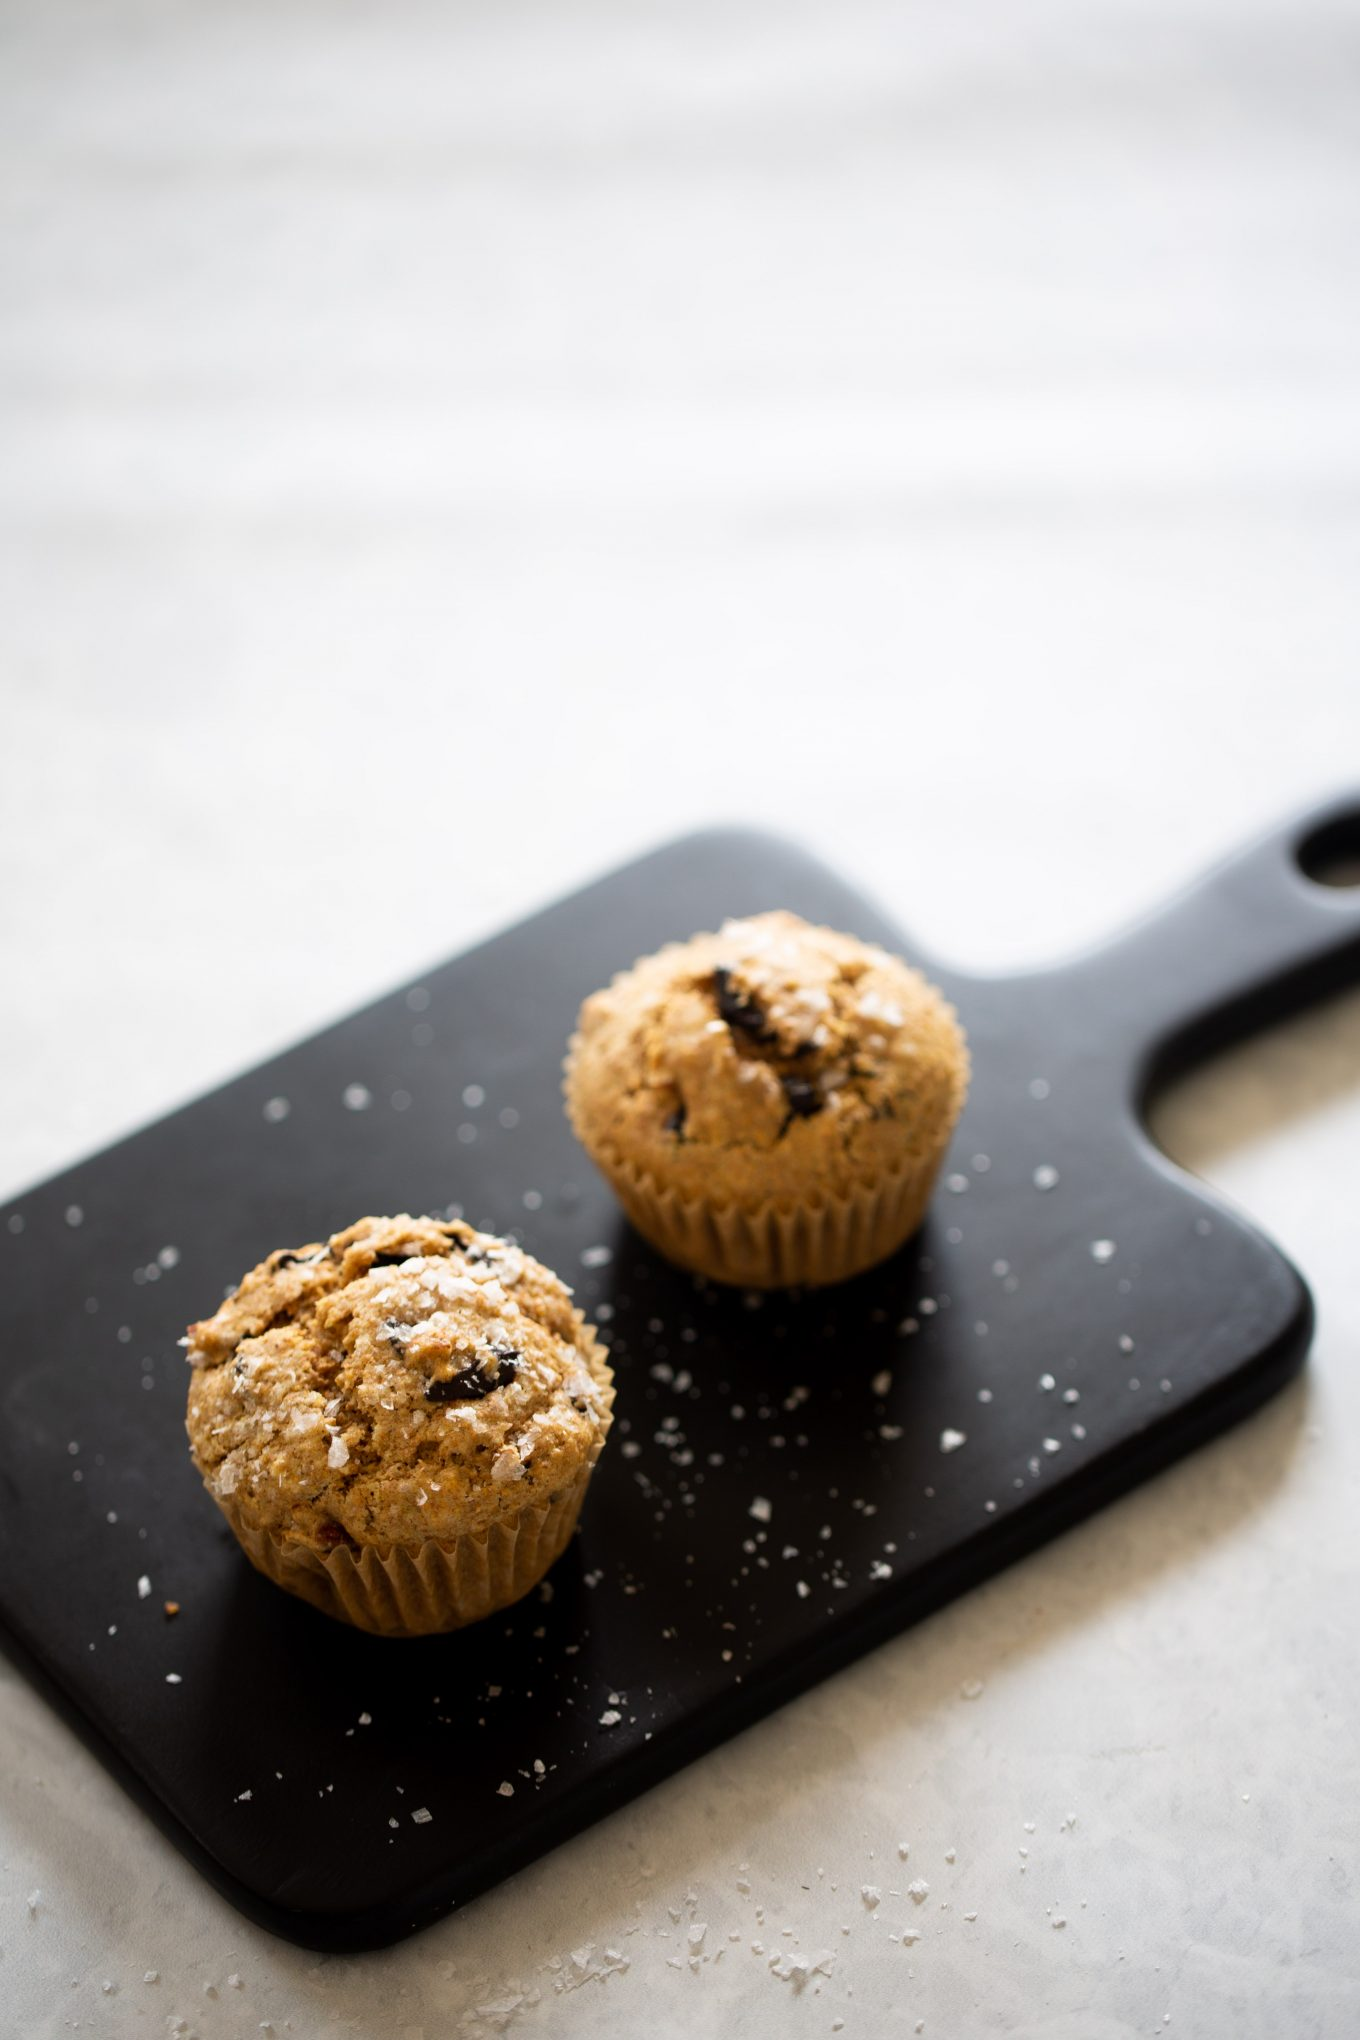 Muffins with dark chocolate and almonds